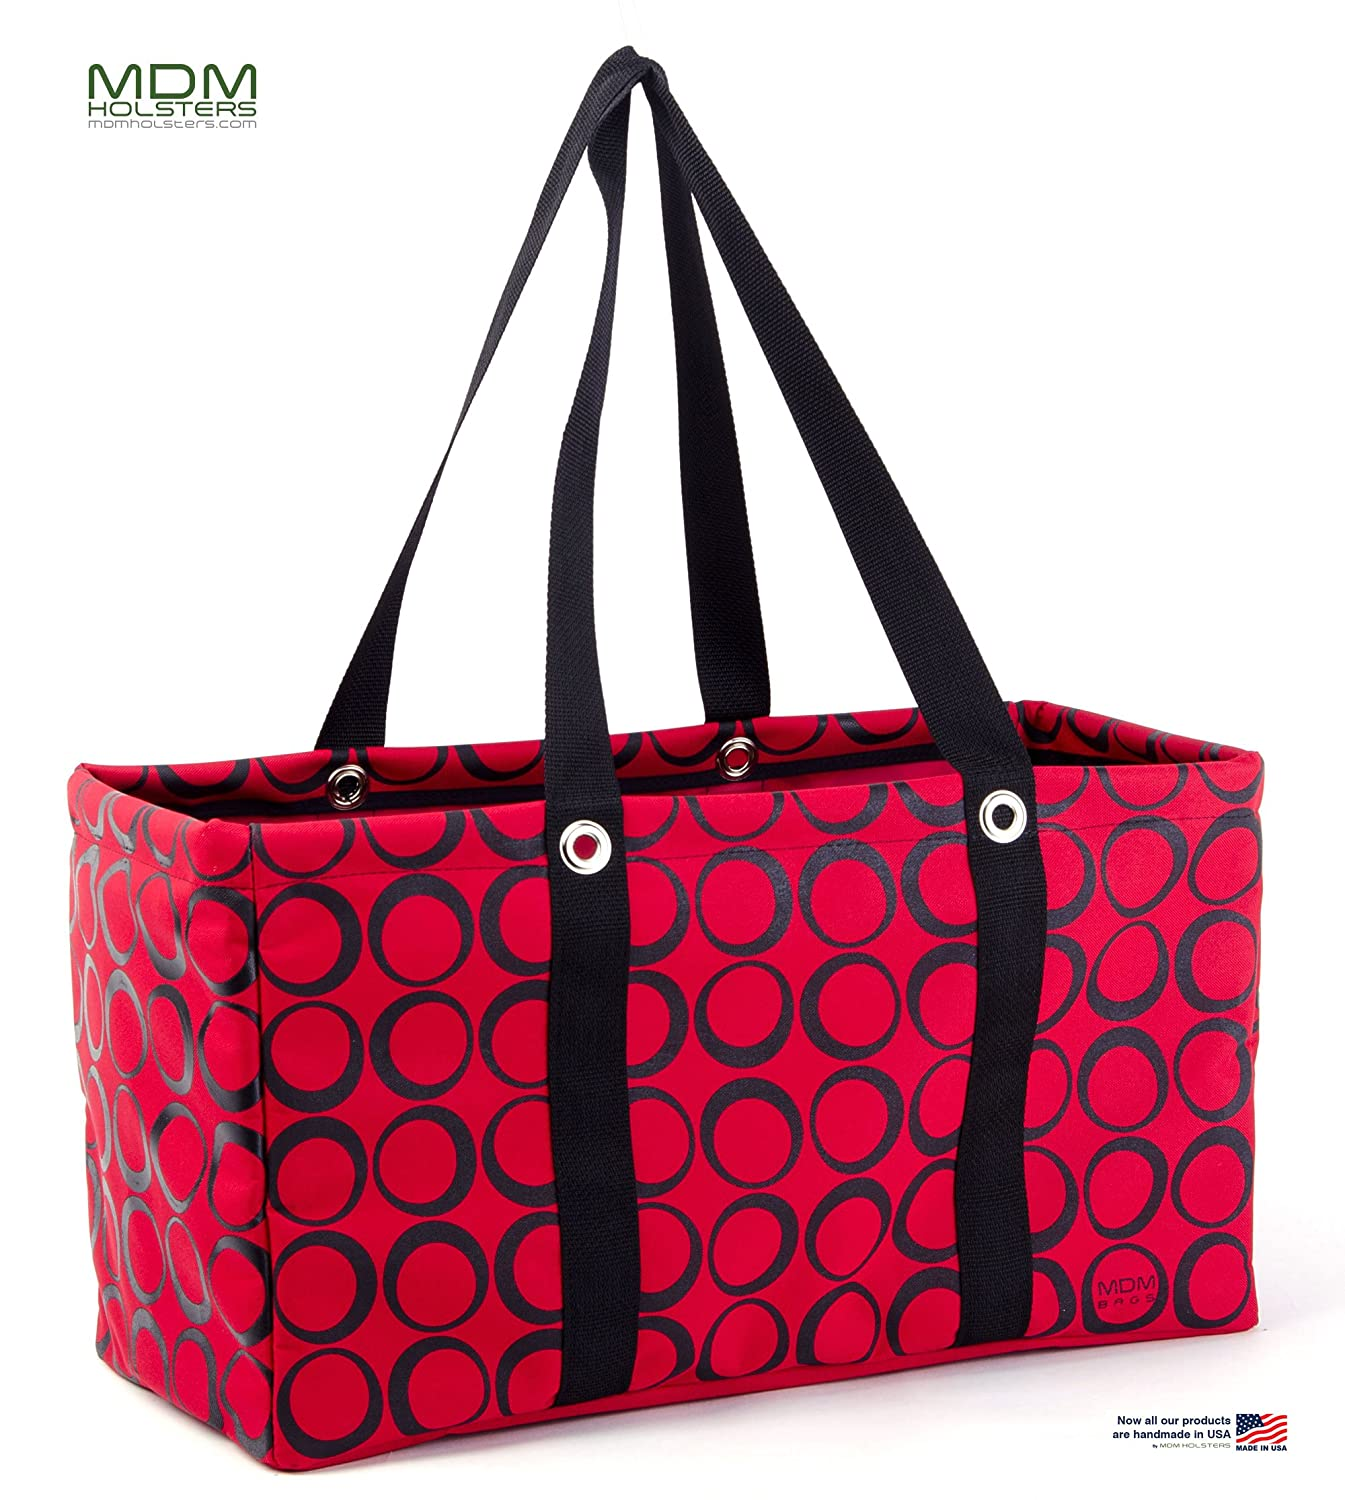 MDM Large Beach Tote Bag